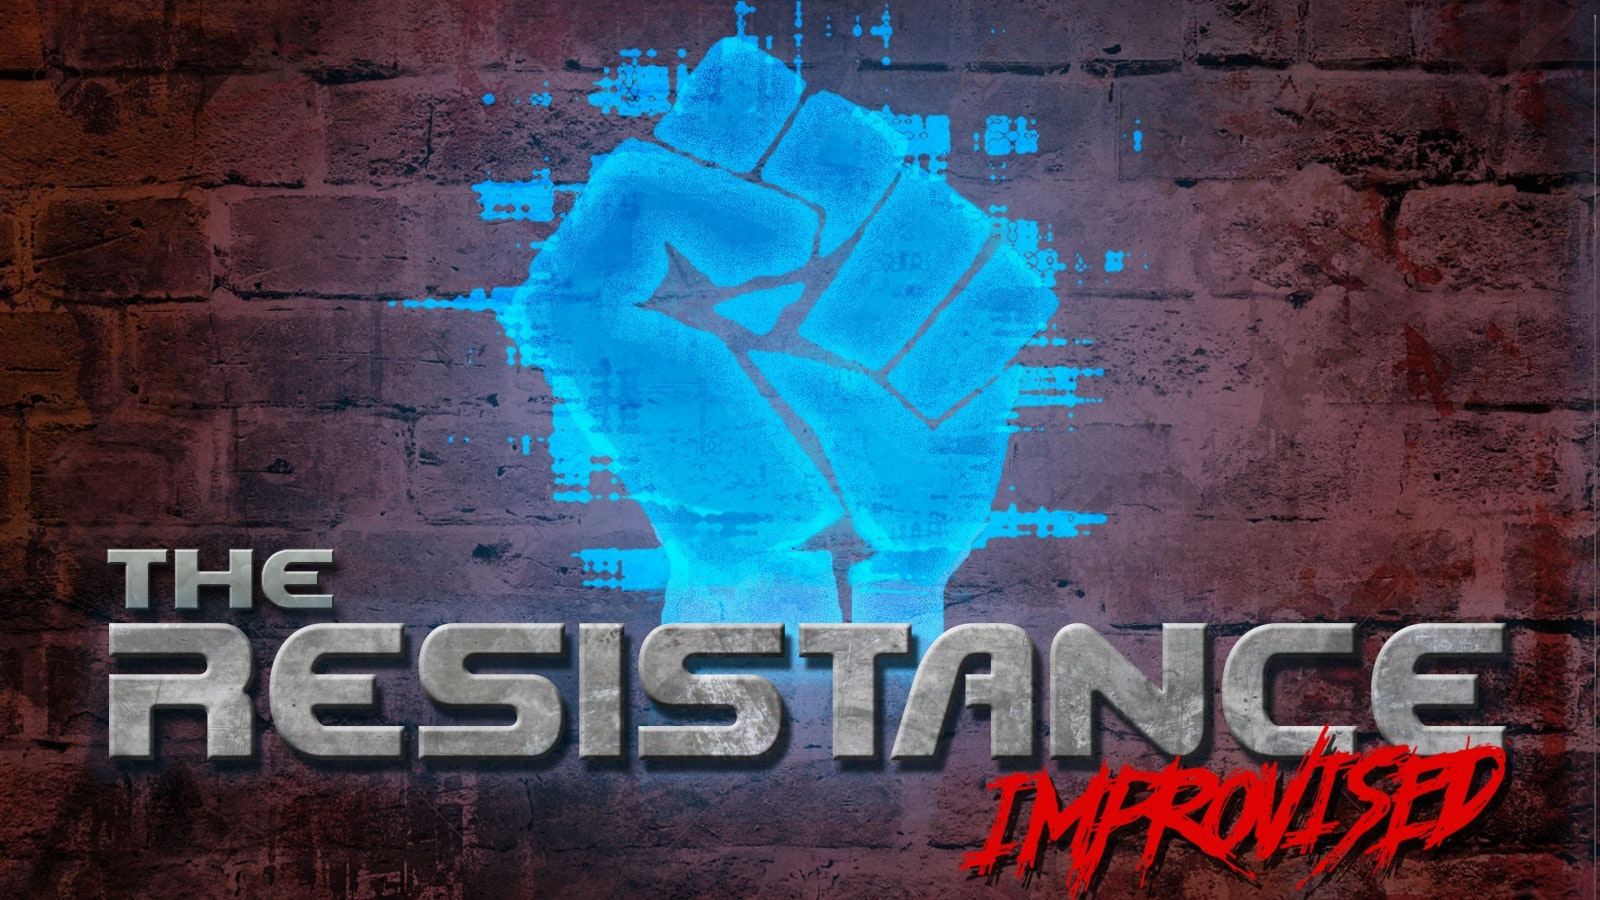 The Resistance Improvised